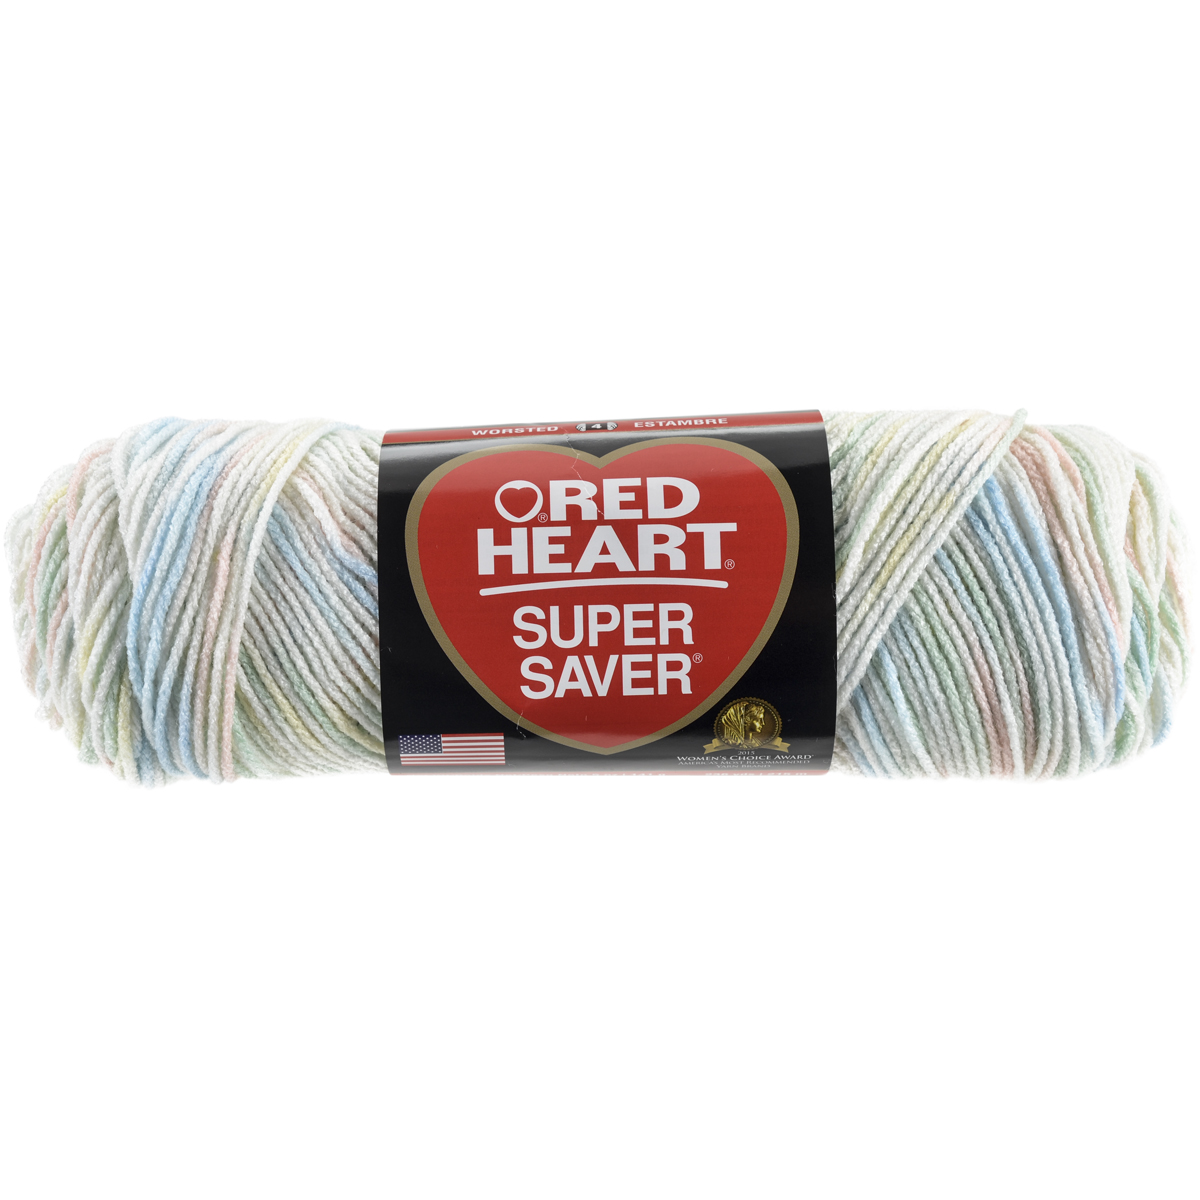 New Red Heart Yarn Baby Print